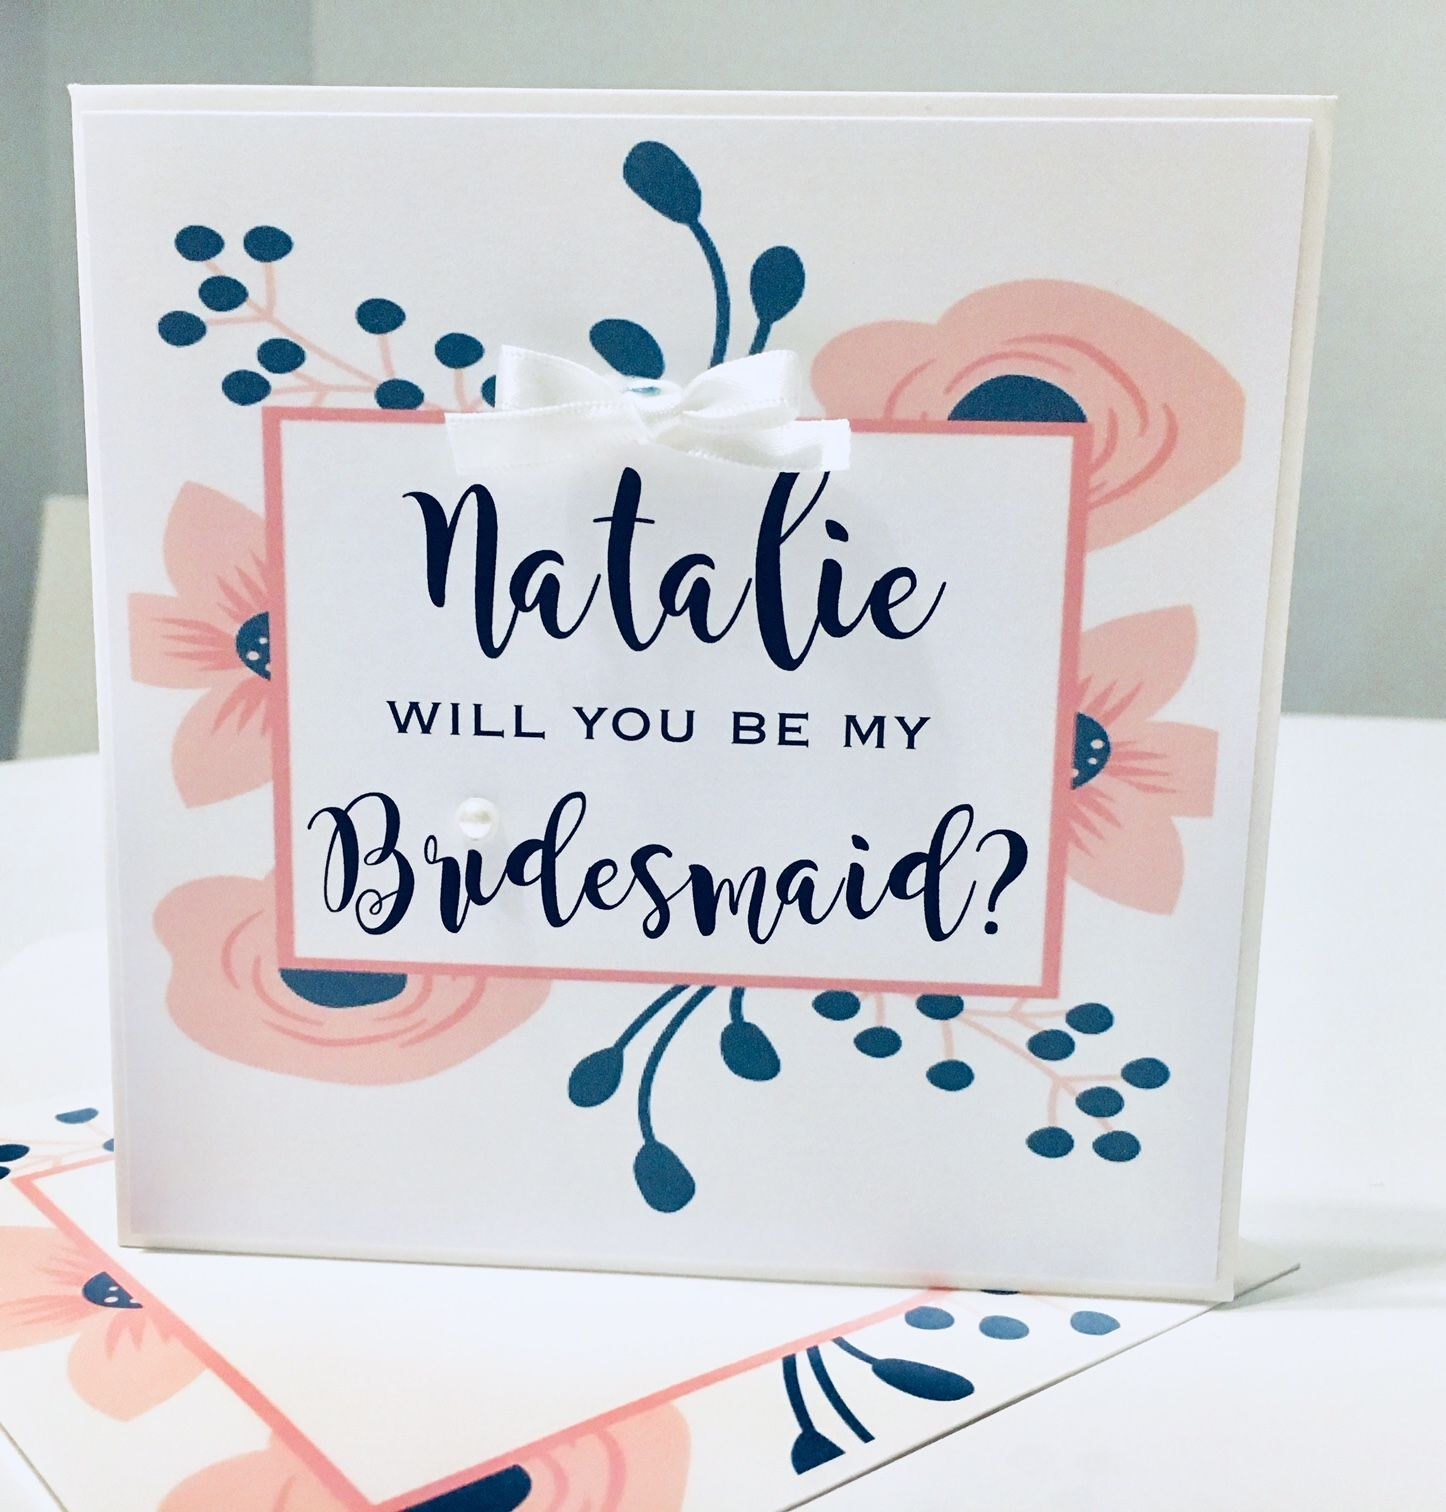 Personalised cards for Bridesmaids, maid of honour, flower girls and the wedding attendants including bestman, ushers and pageboys